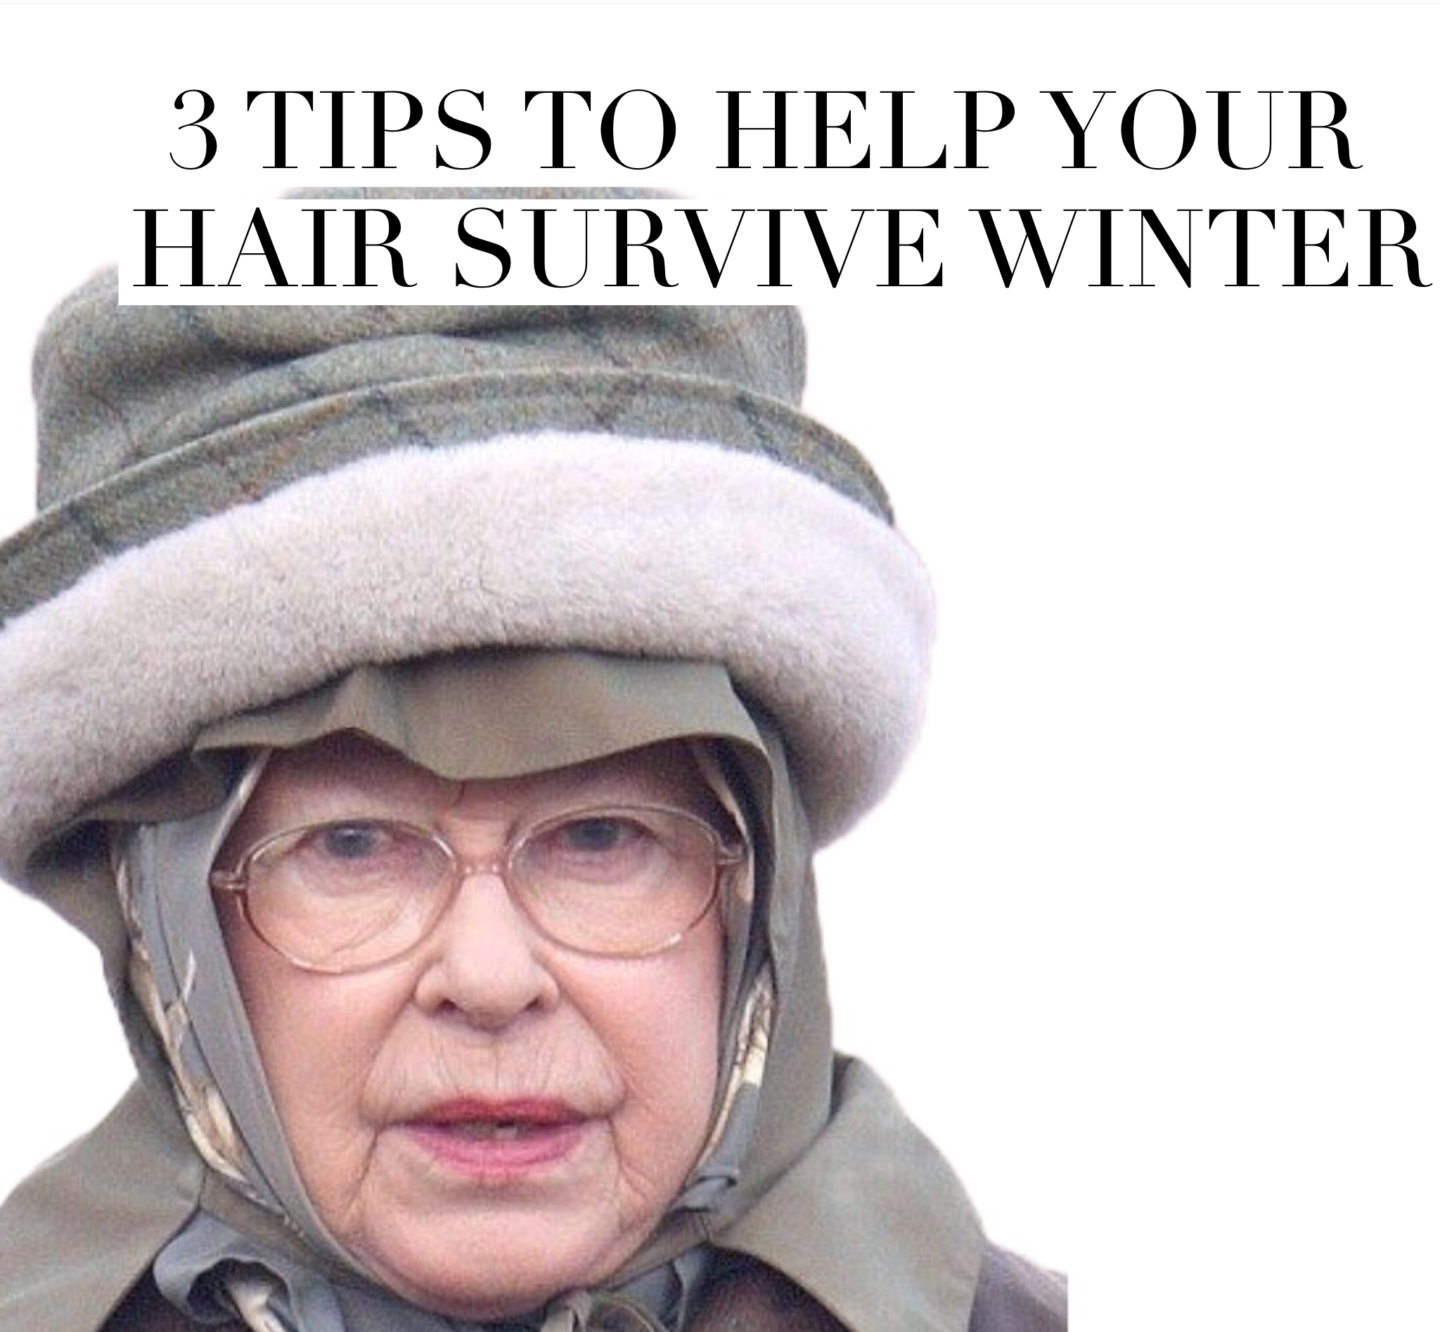 3 TIPS TO HELP YOUR HAIR SURVIVE WINTER   2017